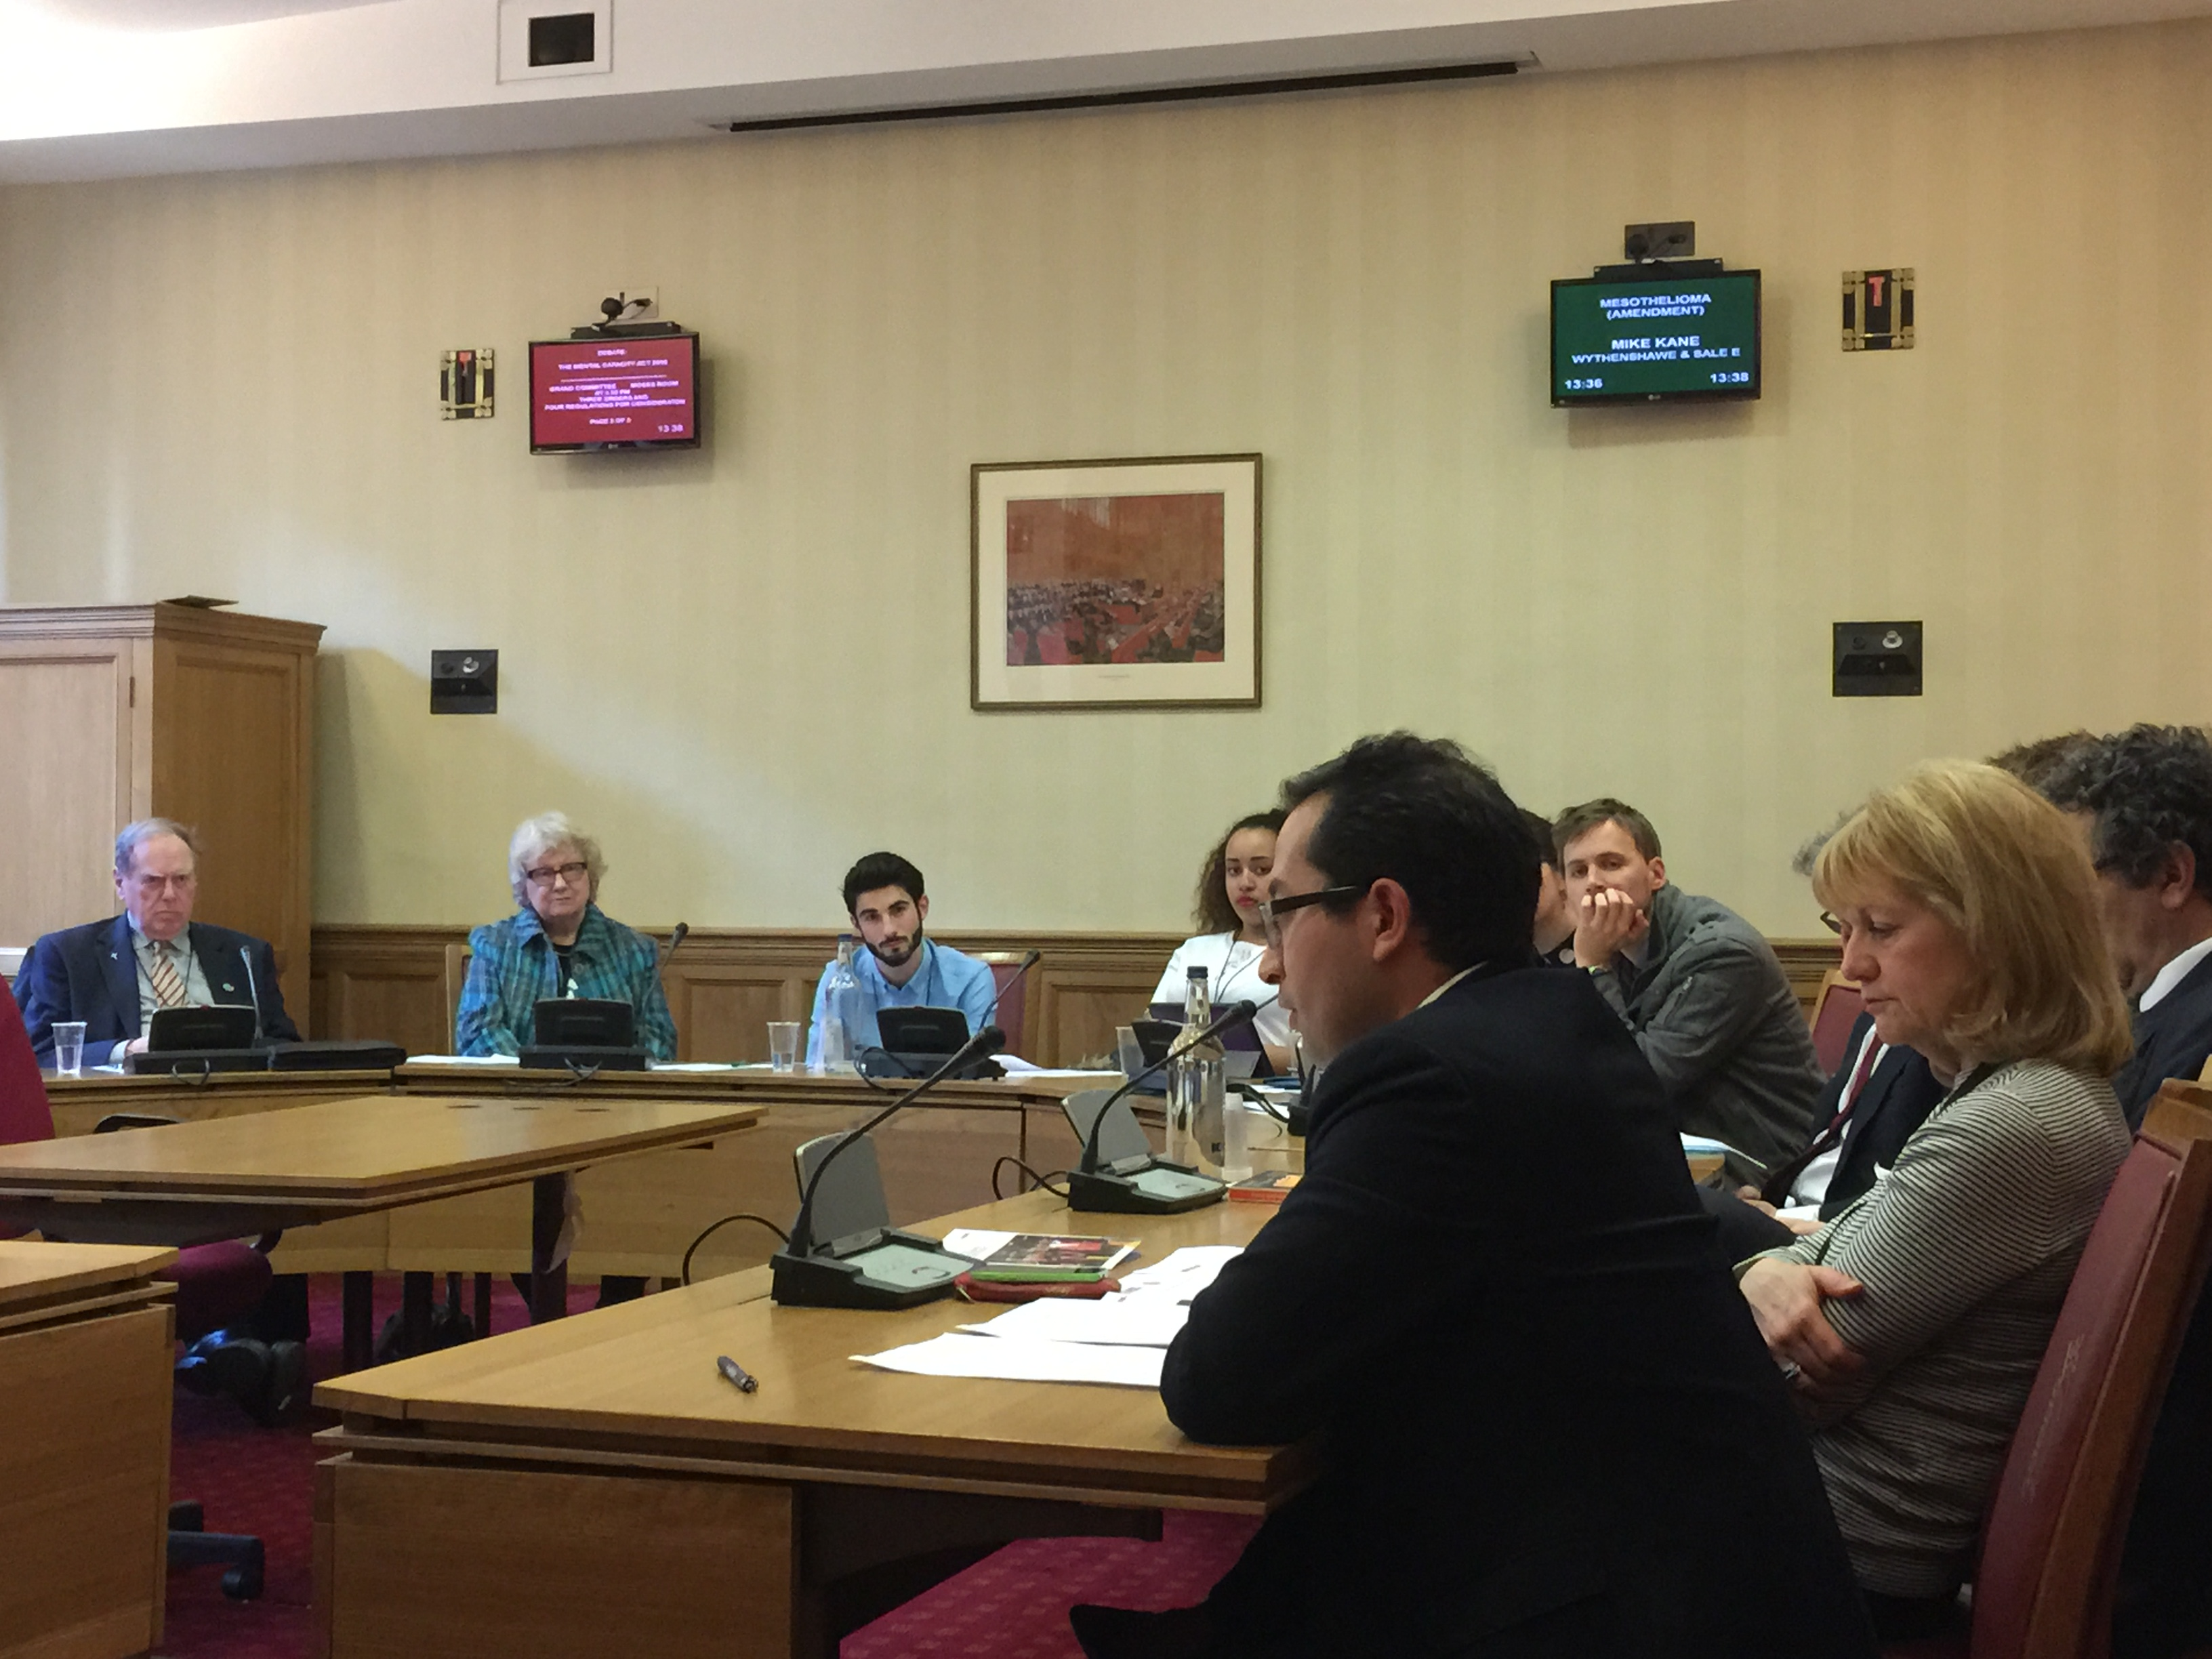 2015-03-10 (Penrose Care) Robert Stephenson-Padron speaking House of Lords